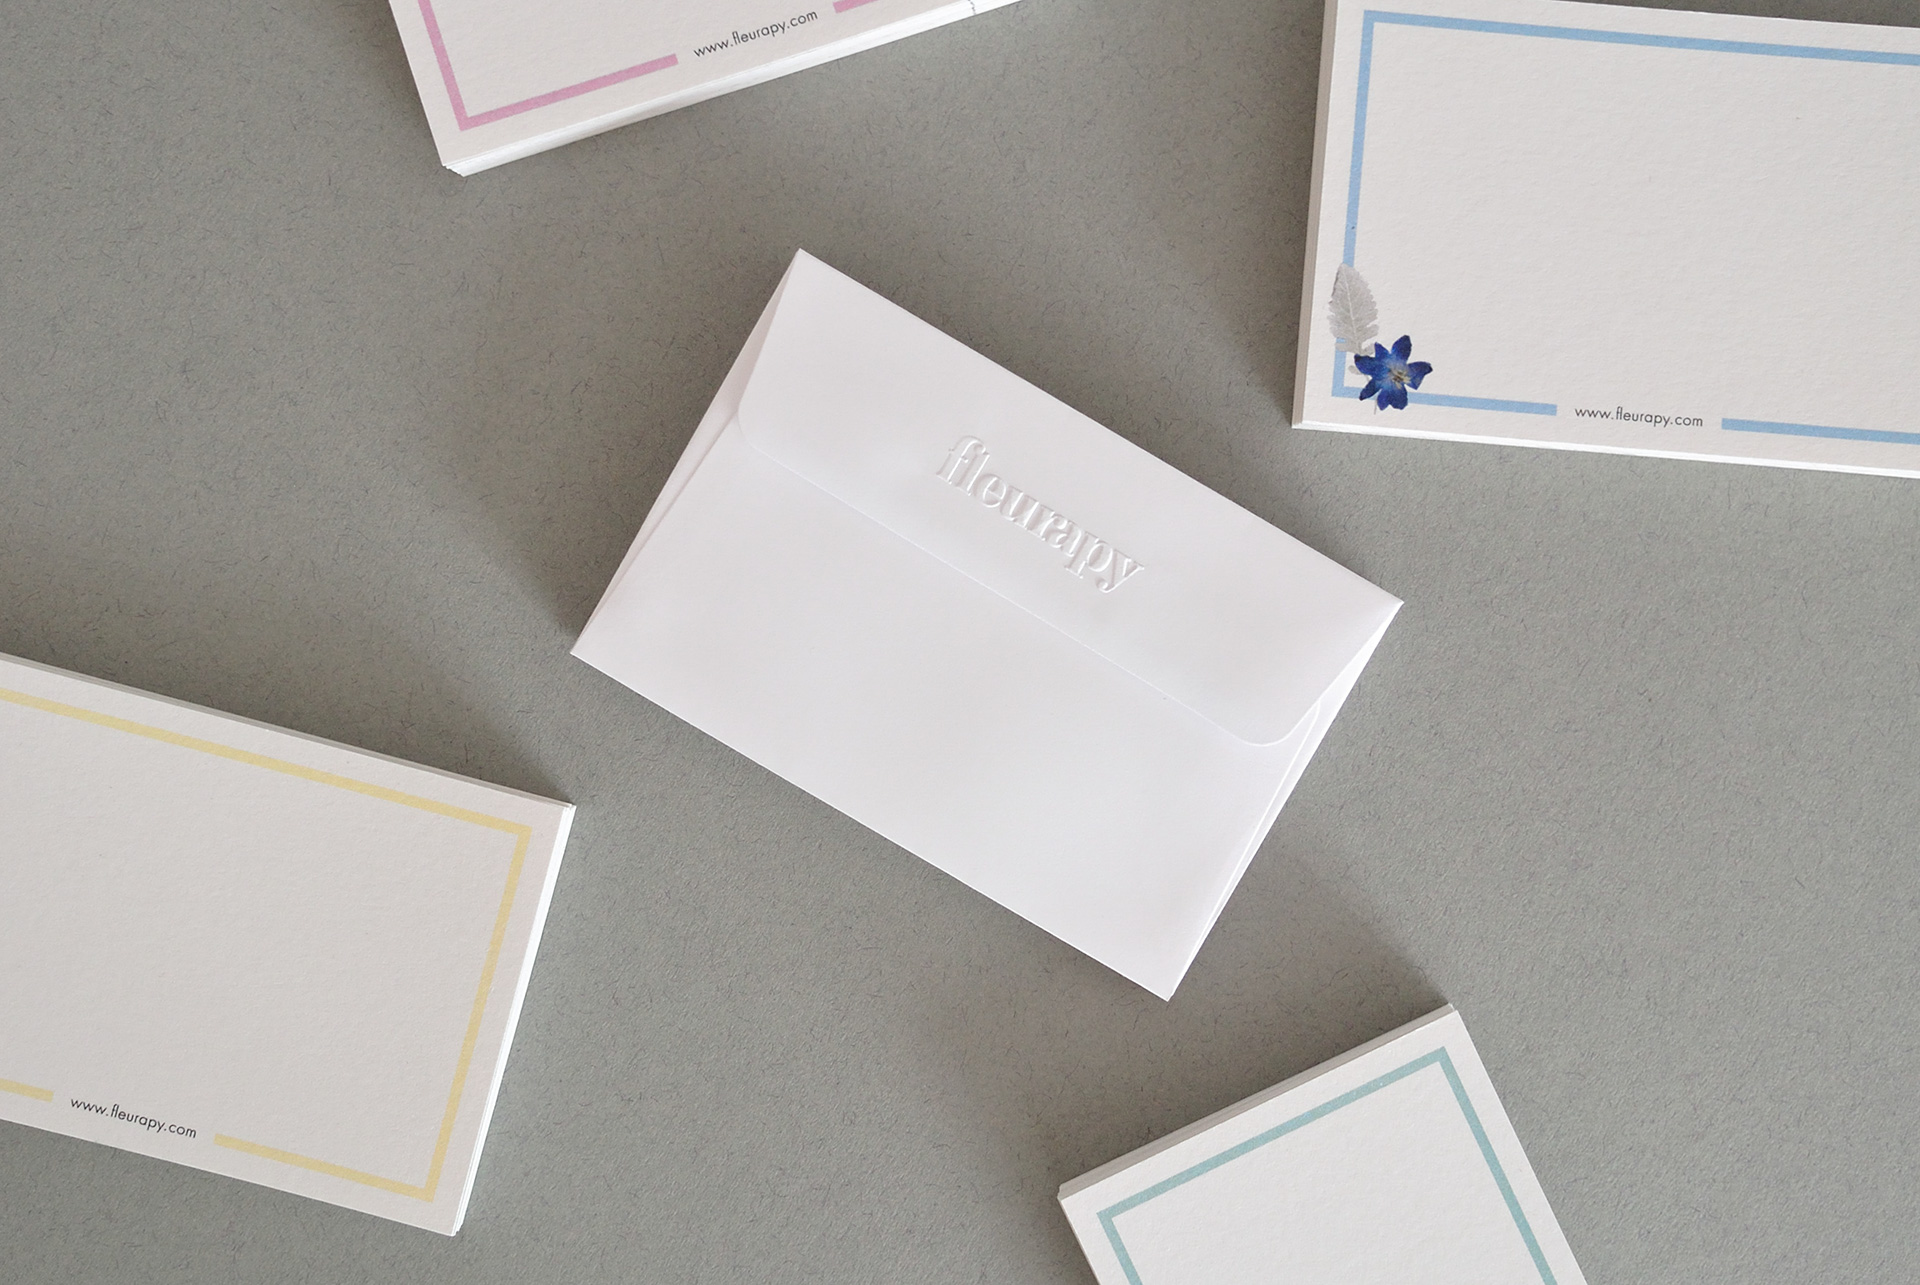 Fleurapy Stationery – Envelope & Note Cards 01